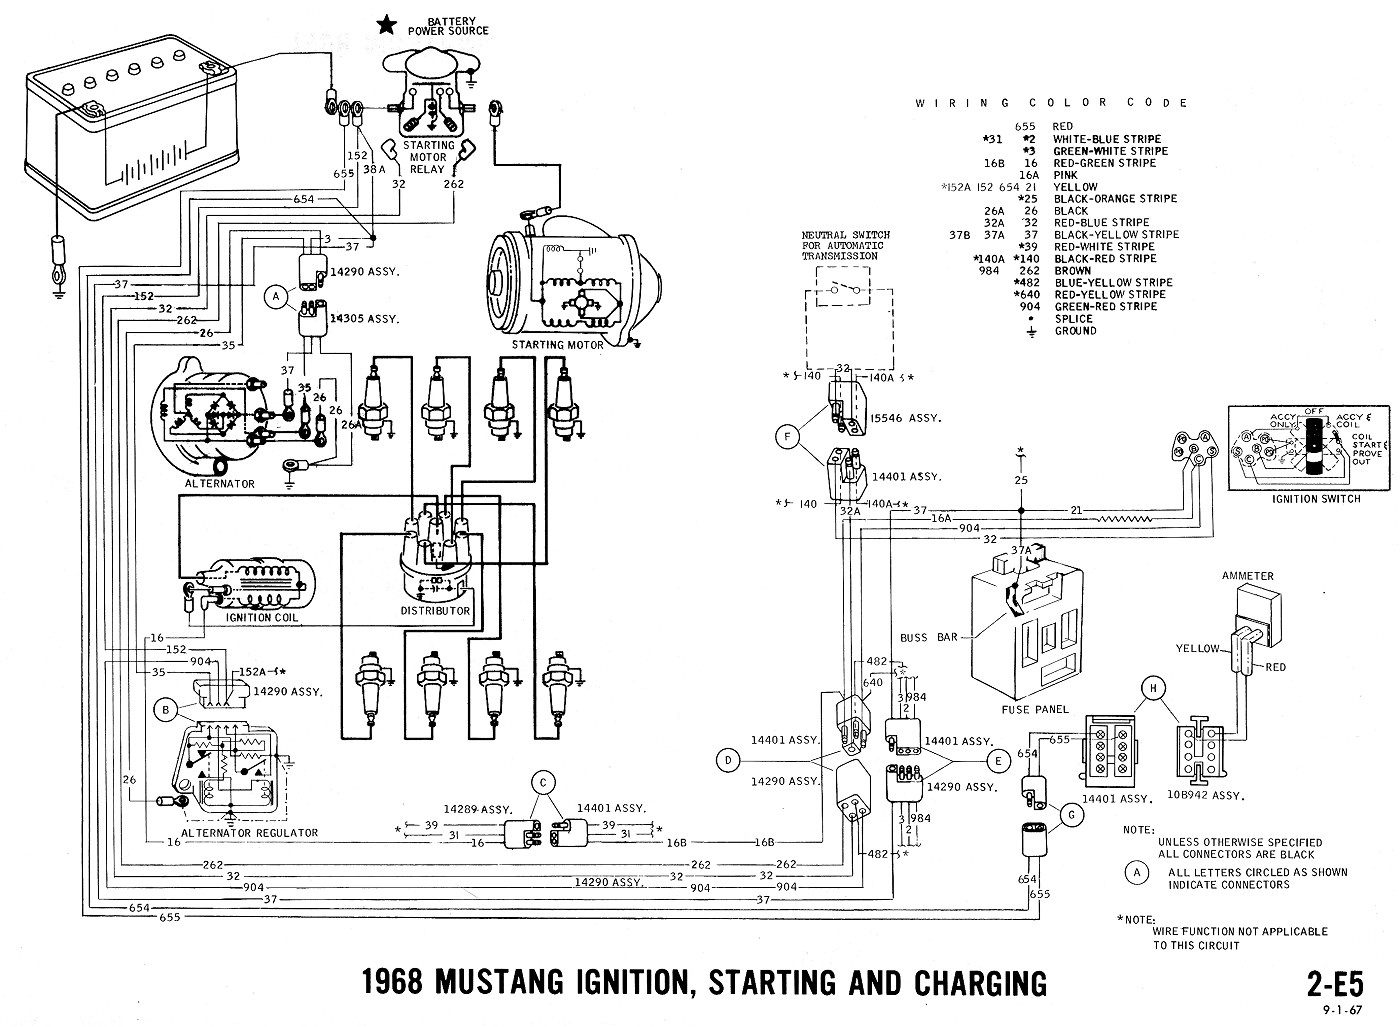 68 mustang engine wiring diagram anything wiring diagrams u2022 rh flowhq co 1967 mustang engine wiring diagram 1970 mustang engine wiring diagram